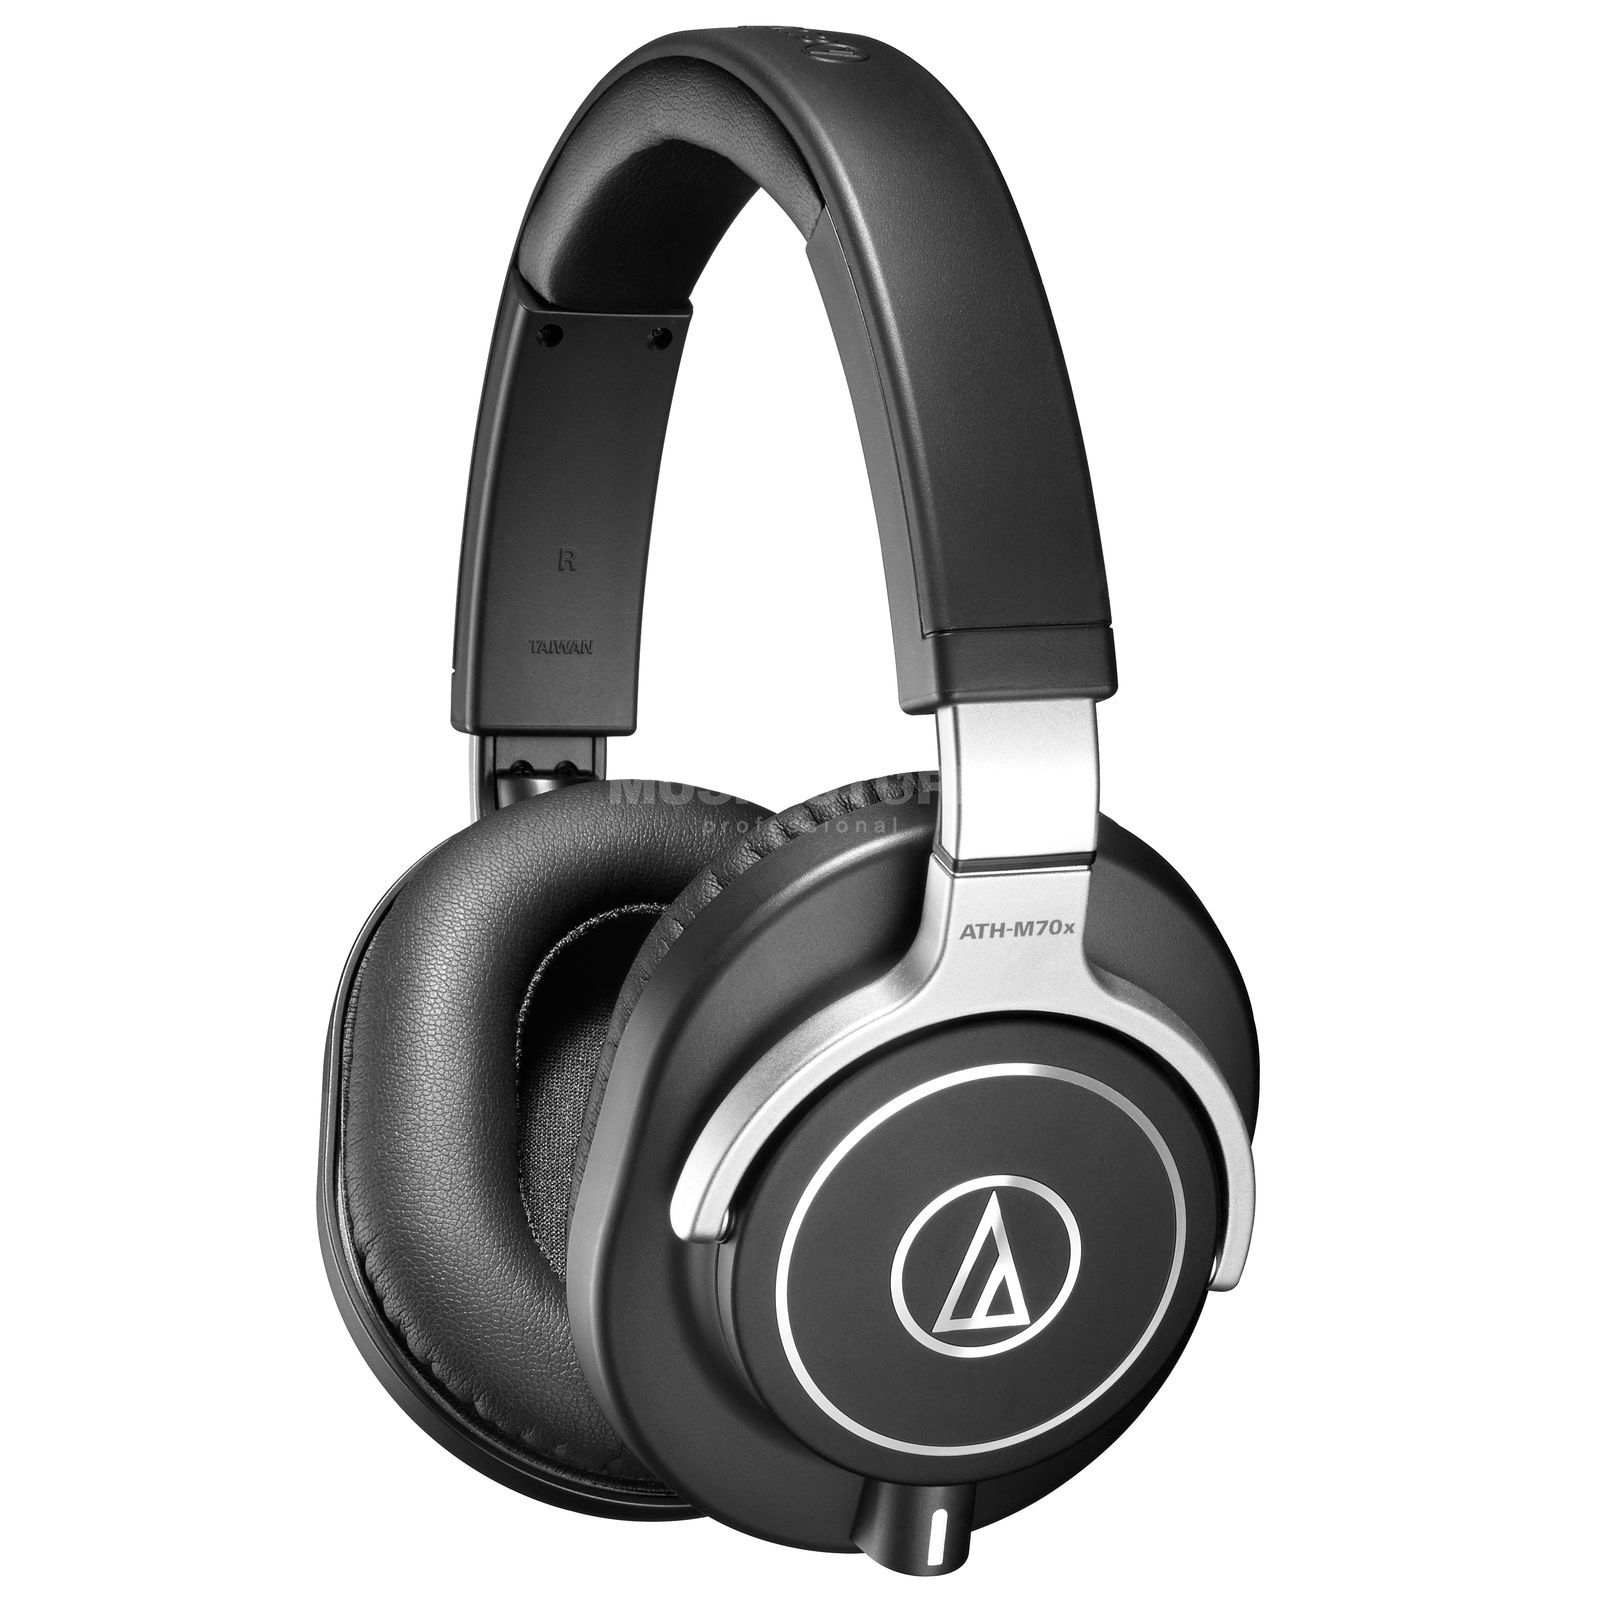 Audio-Technica ATH-M70x - Studio Headphones, closed Produktbillede